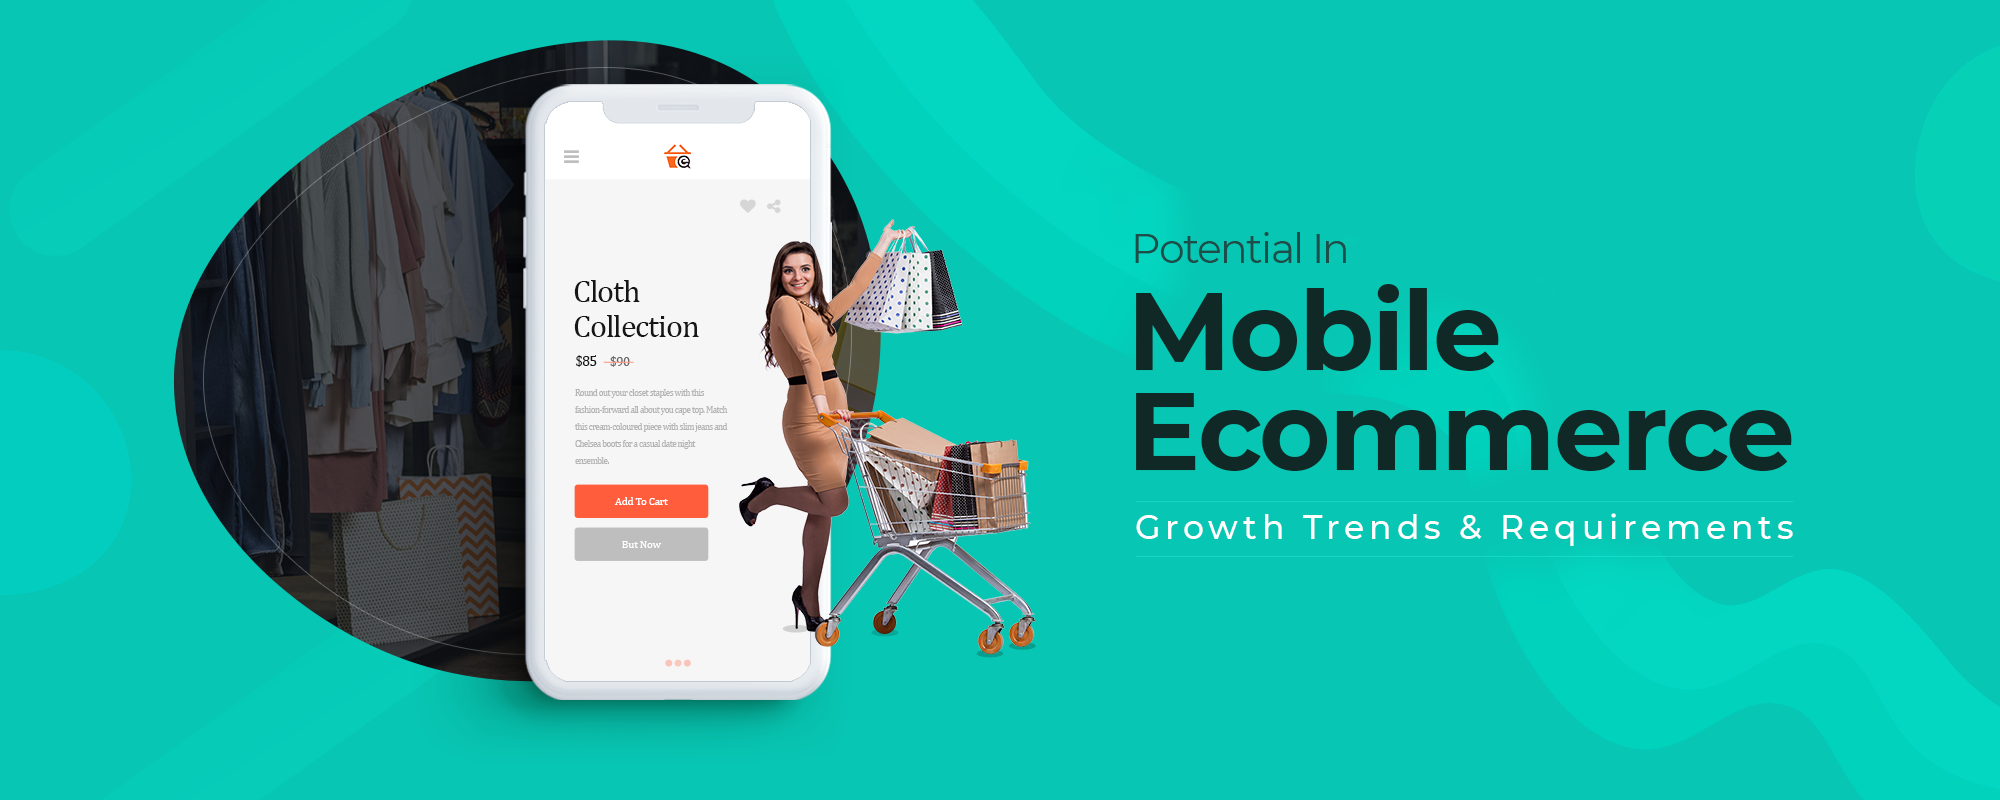 Potential in Mobile Commerce, Growth Trends and Requirements